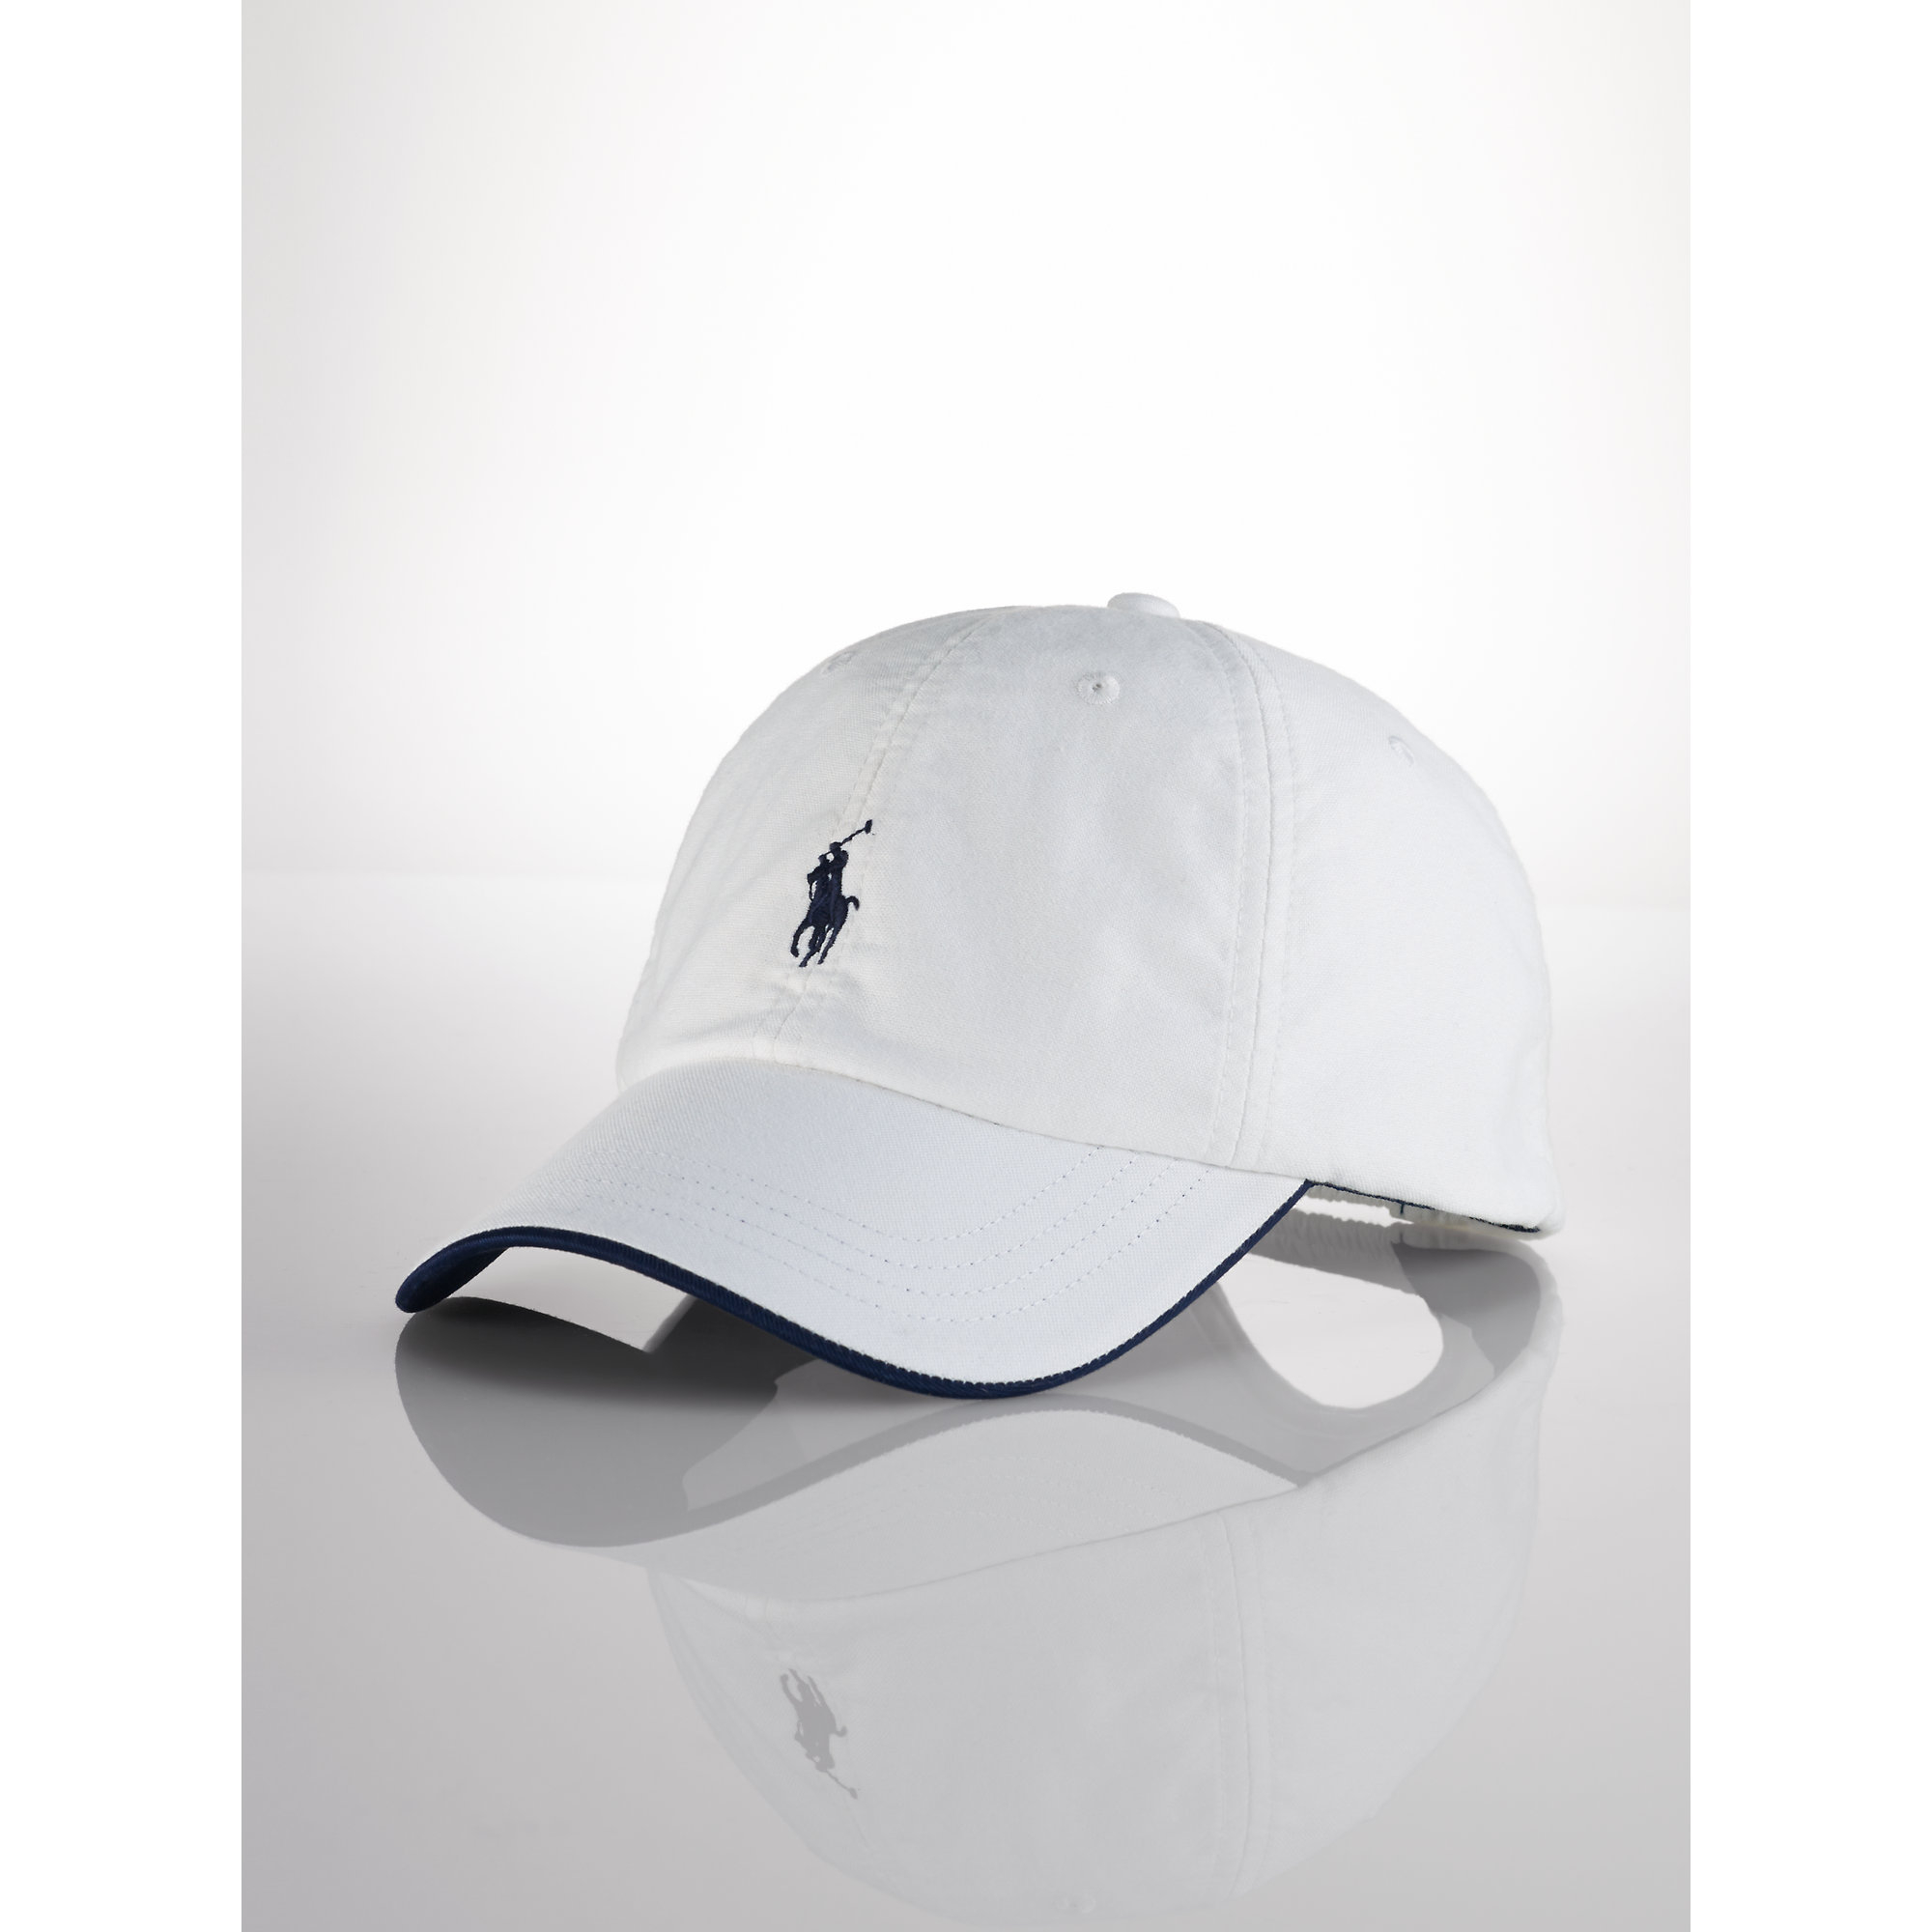 Lyst - Polo Ralph Lauren Cotton Oxford Baseball Cap in White for Men 6eba40f4ab3